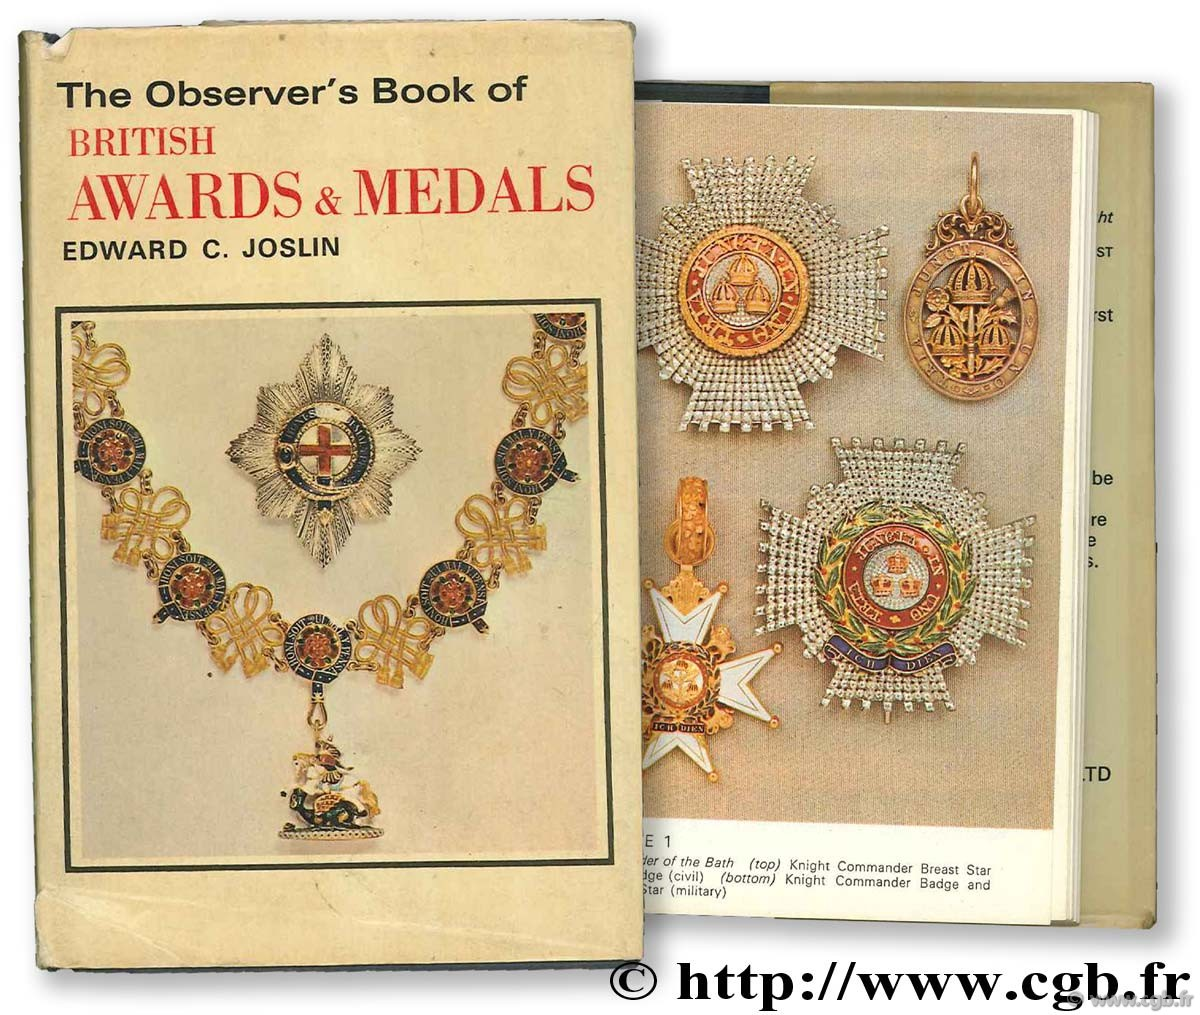 The observer s book of british awards & medals JOSLIN E.